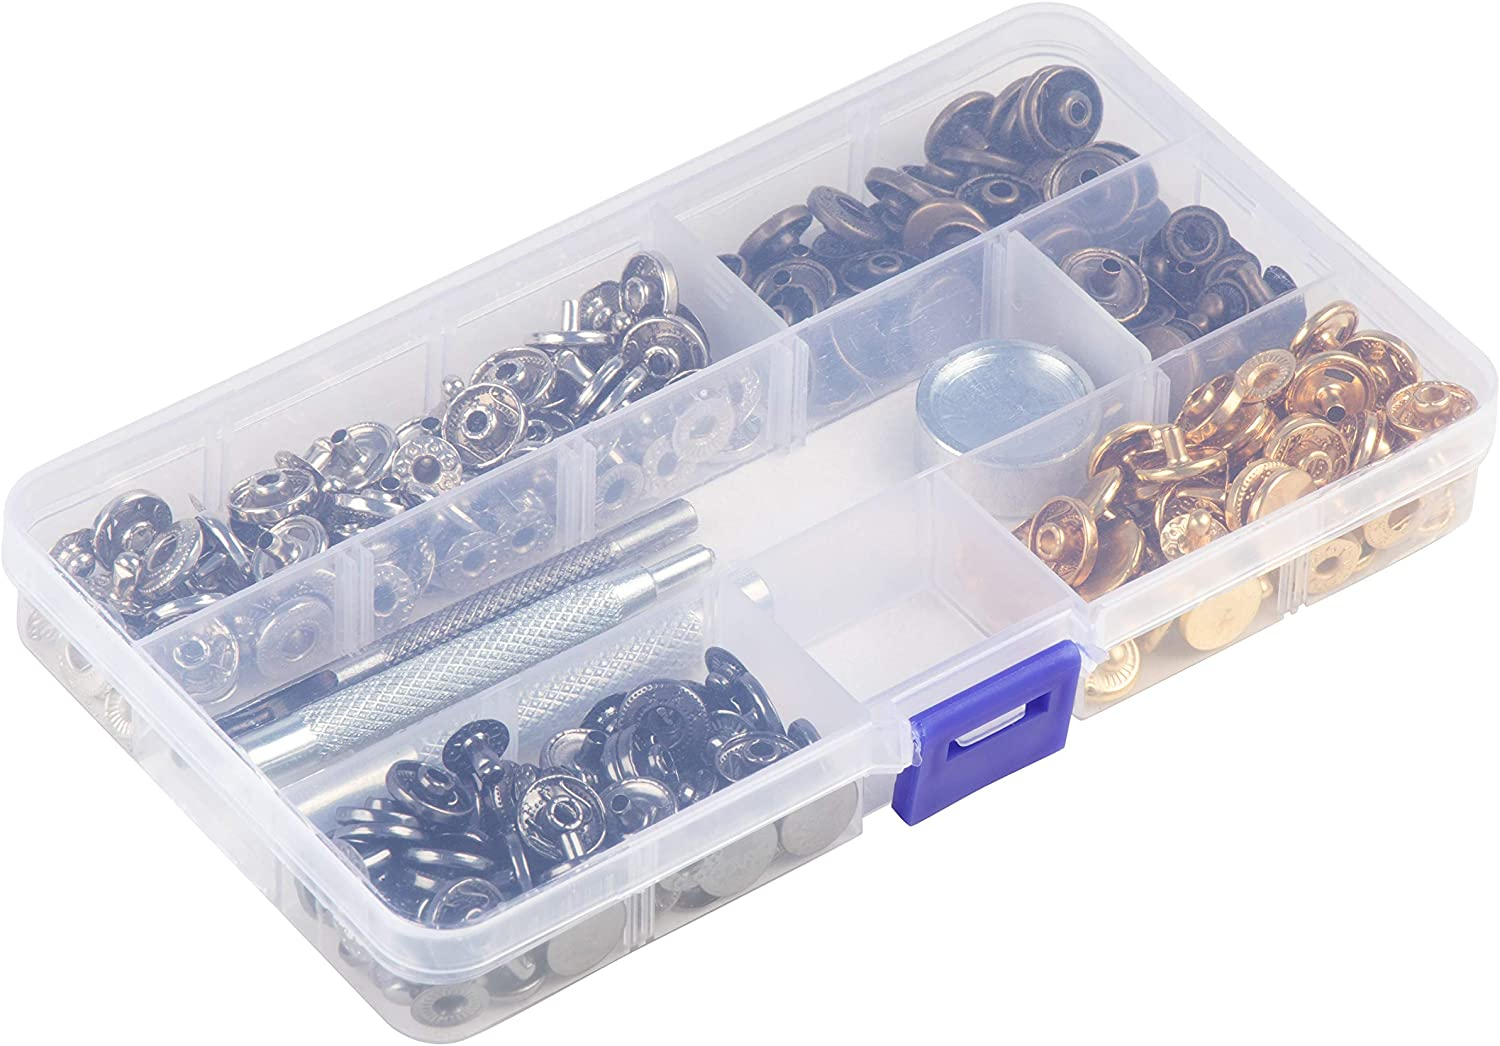 4 Colors with 4-Piece Tools Jeans 9 mm Bags Clothing Snaps Craft for Leather Repairing 12 mm Diameter 160-Piece Snap Buttons Metal Snaps Press Studs Snap Fastener Kit Coat